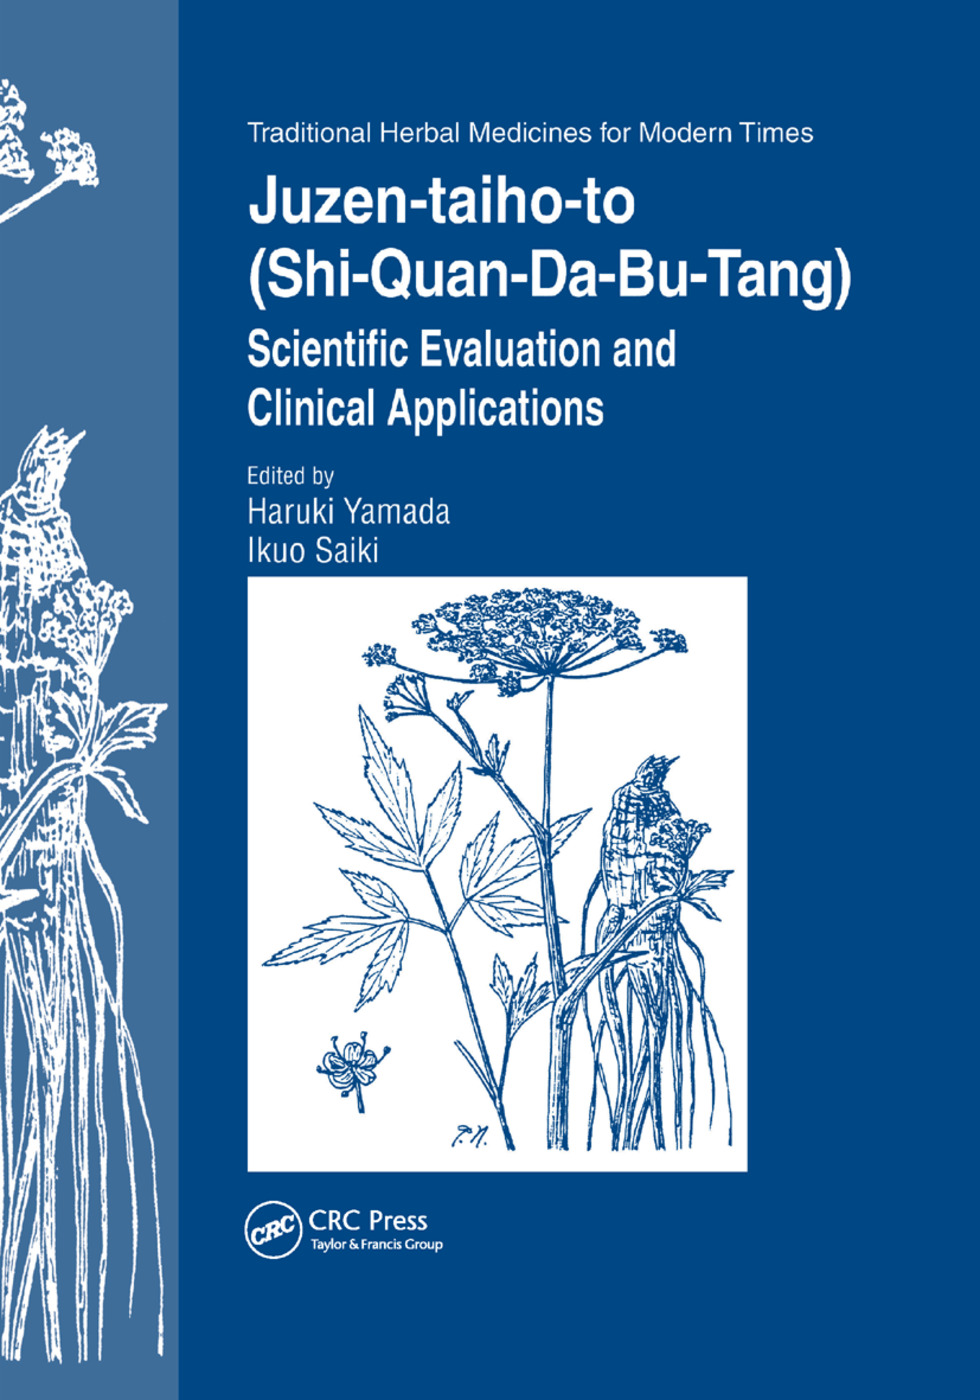 Juzen-taiho-to (Shi-Quan-Da-Bu-Tang): Scientific Evaluation and Clinical Applications, 1st Edition (Paperback) book cover